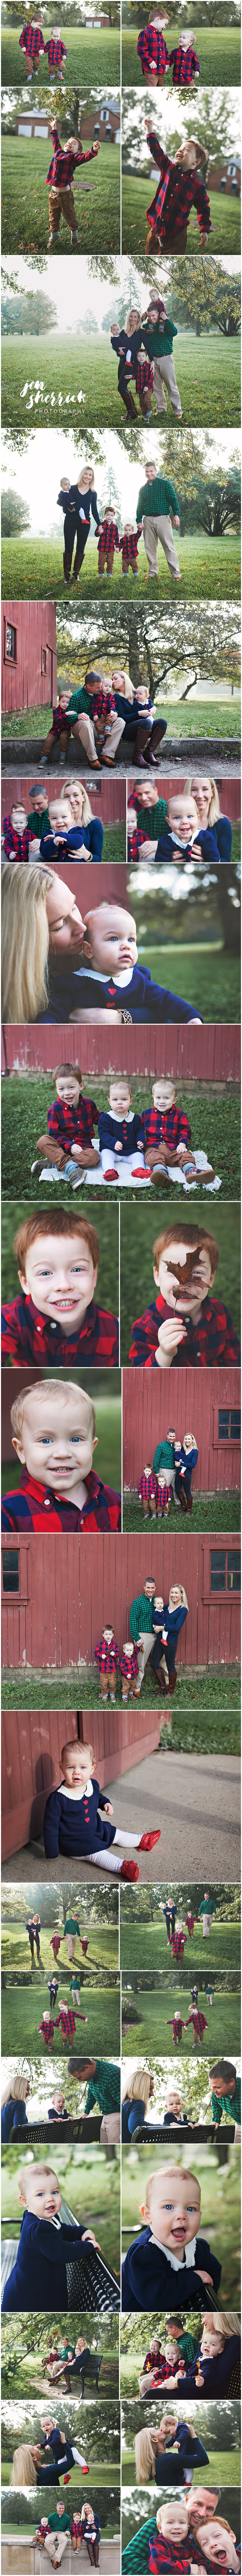 collage of fall family photos